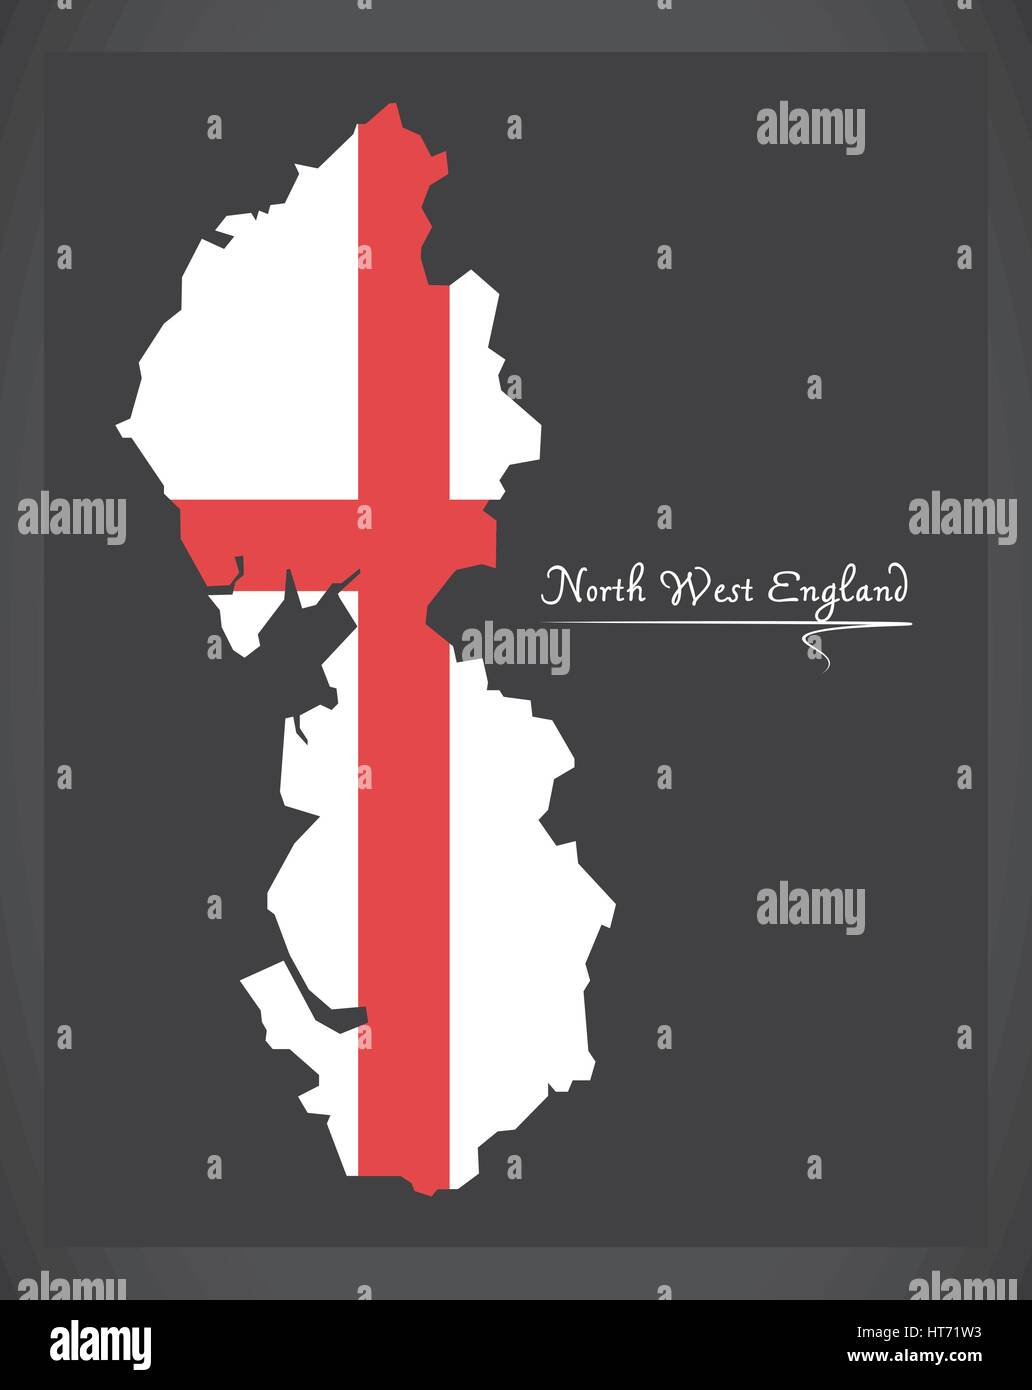 North West England map with flag of England illustration Stock ...